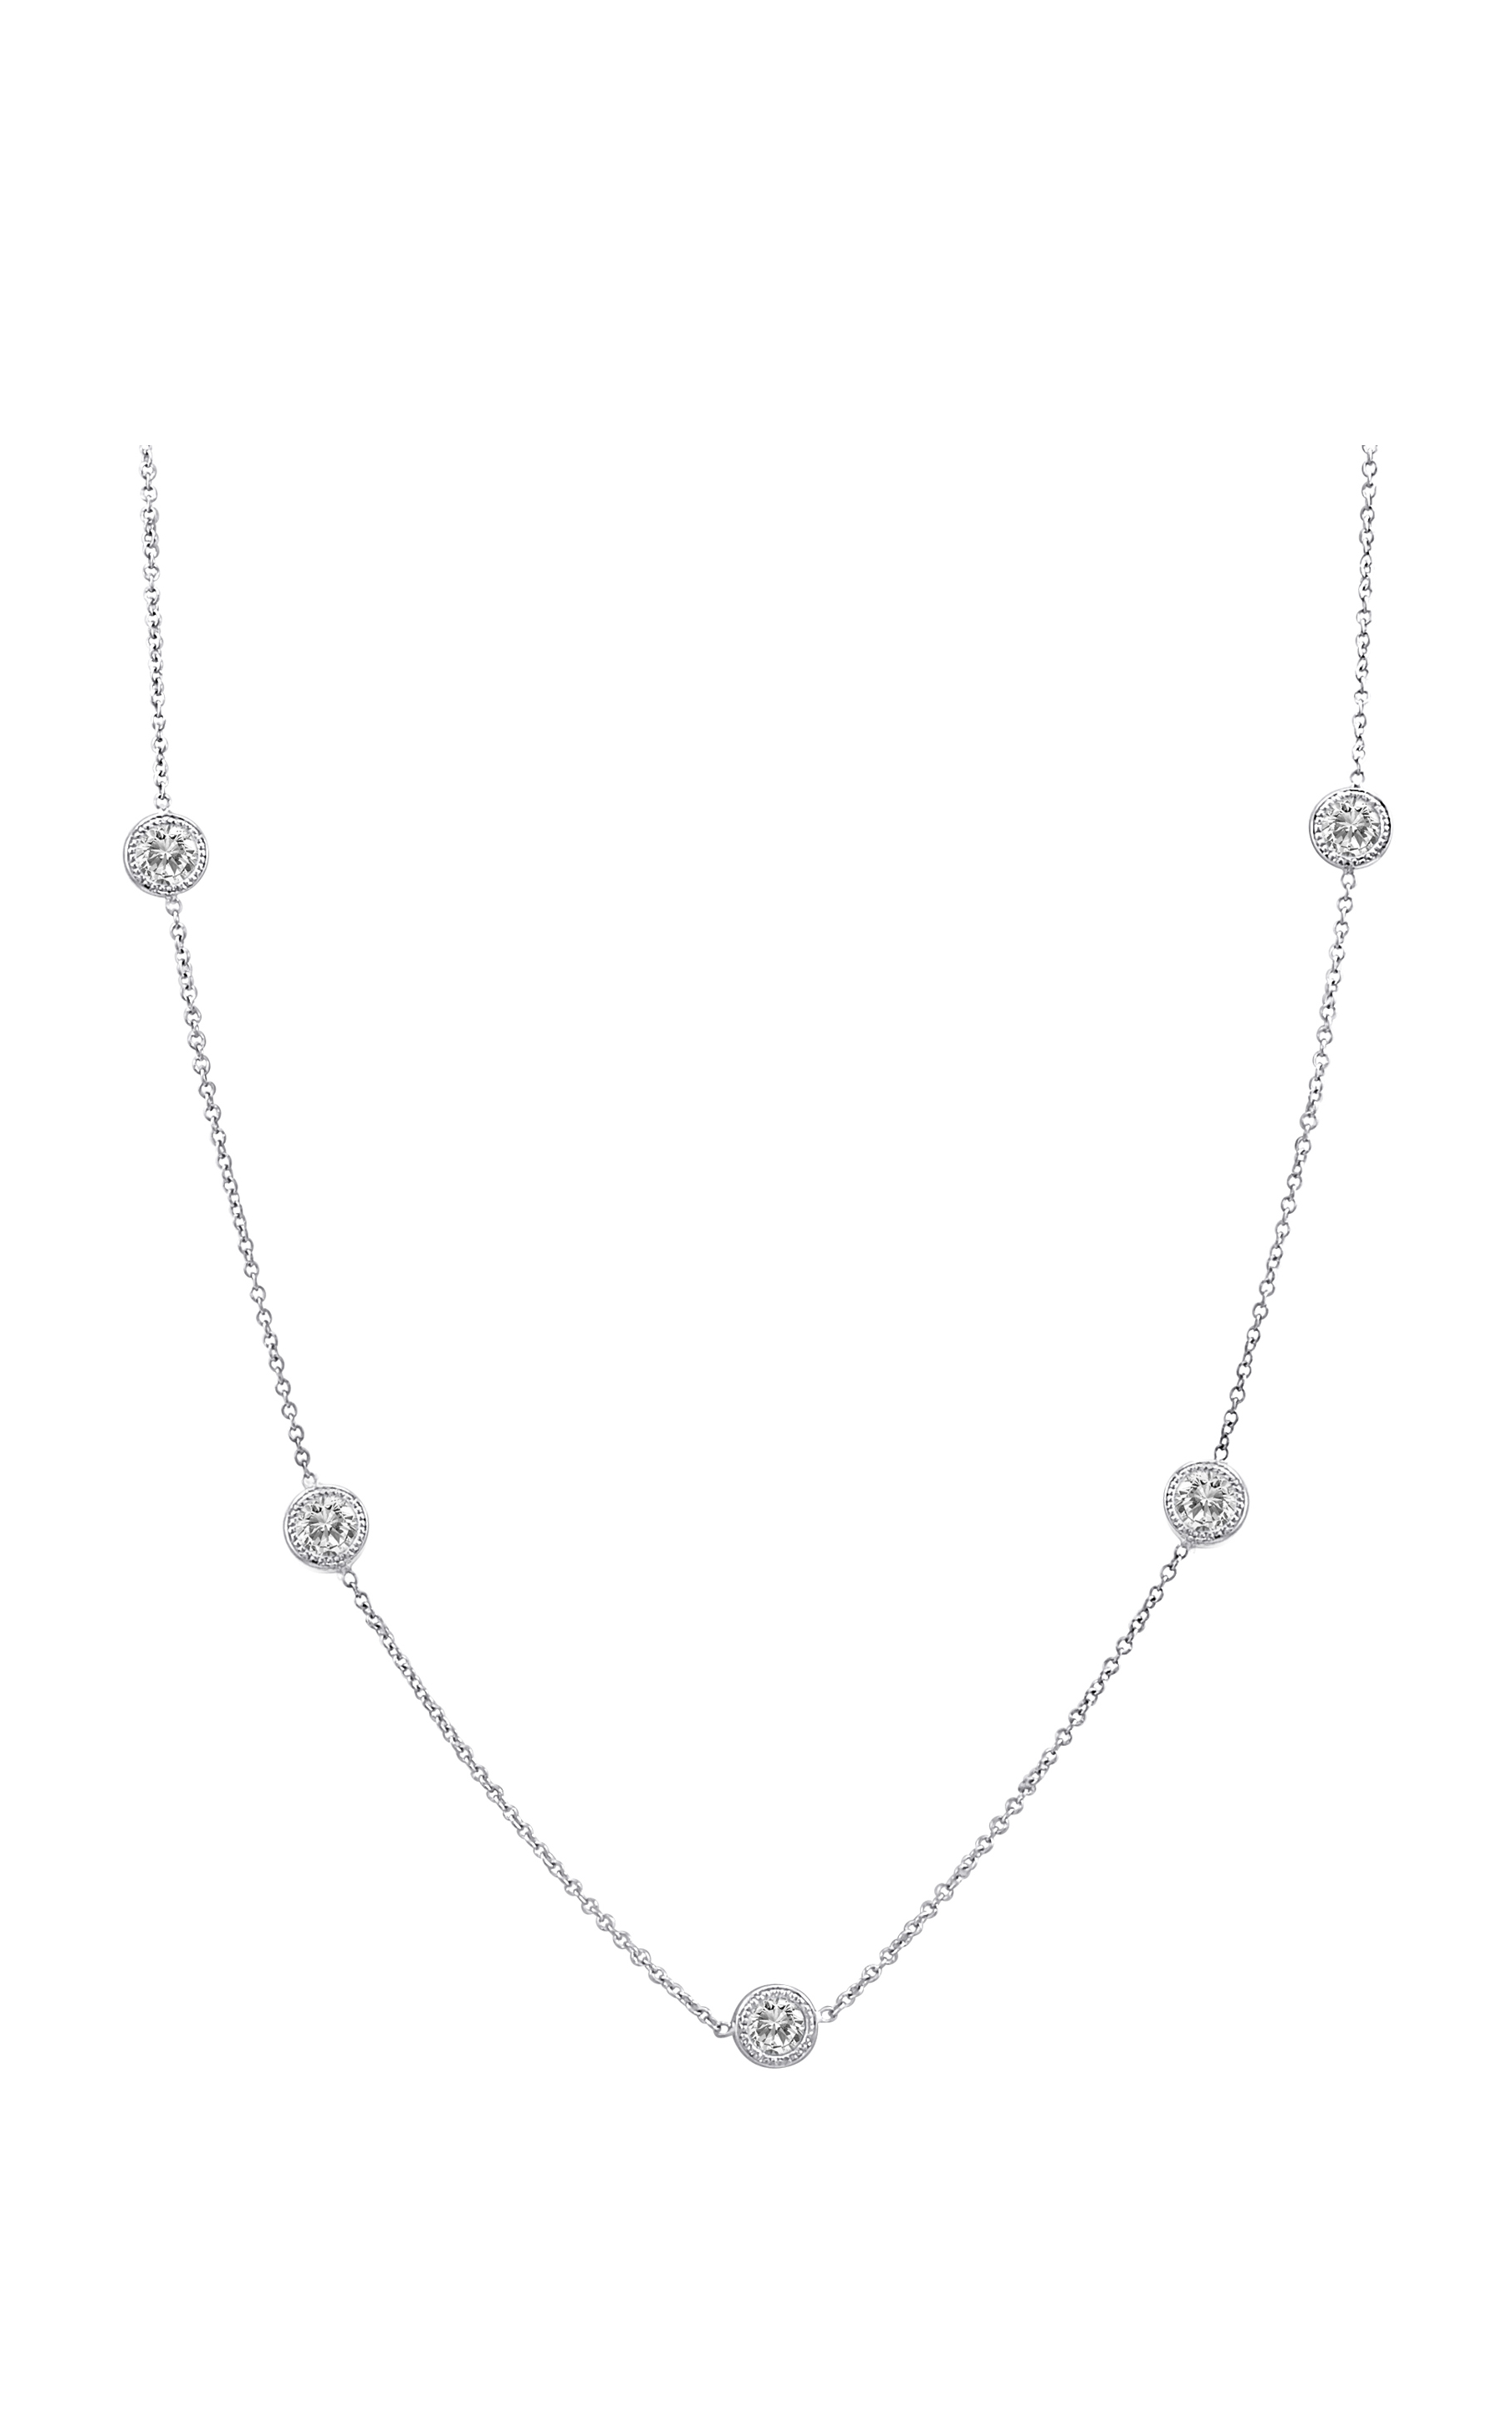 Beny Sofer Necklaces SN10-20-1C product image